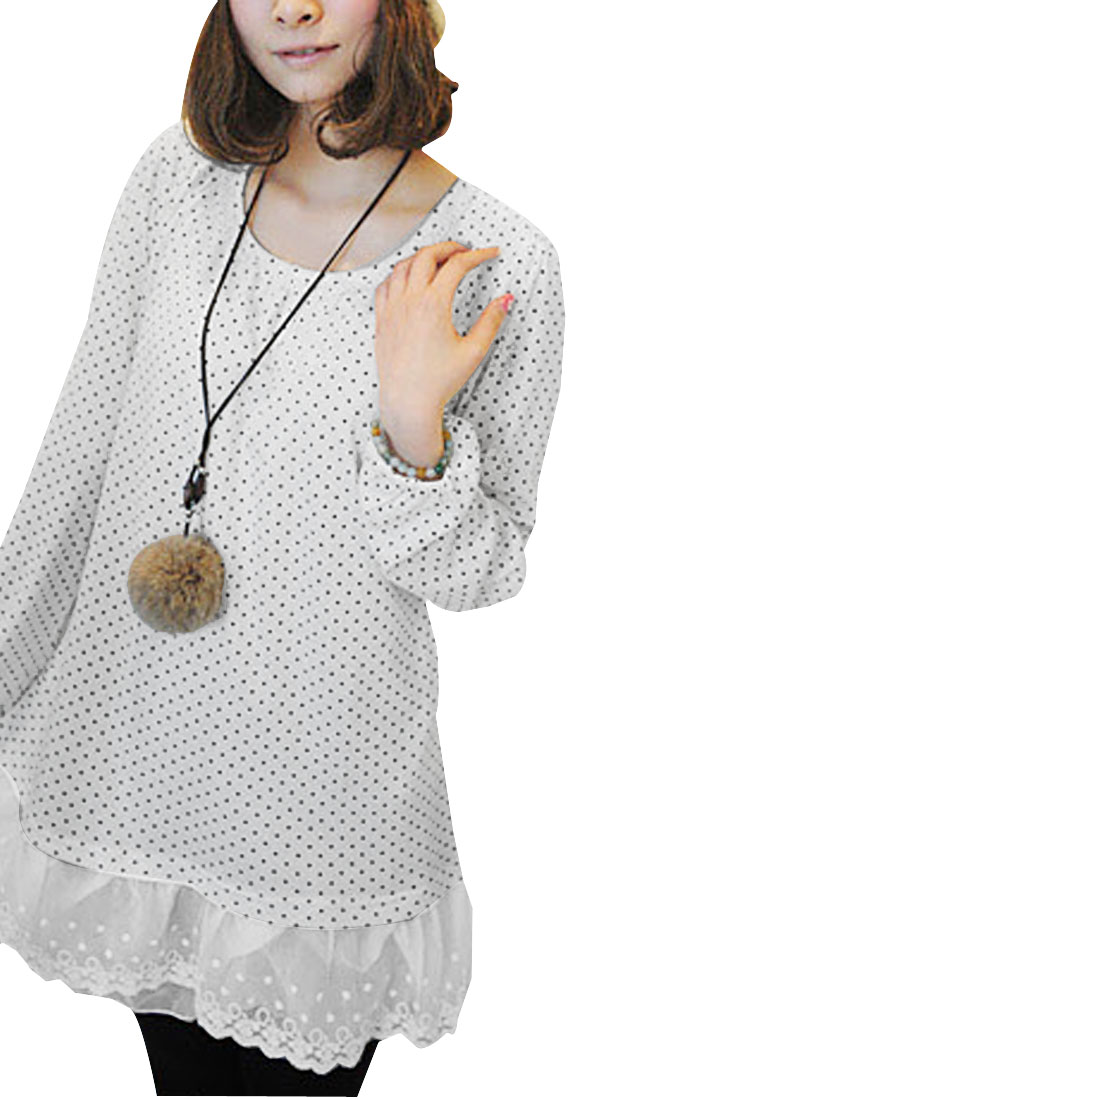 Lady White Black Long Sleeve Dots Lace Panel Layered Hem Elastic Cuff Tunic Shirt XS